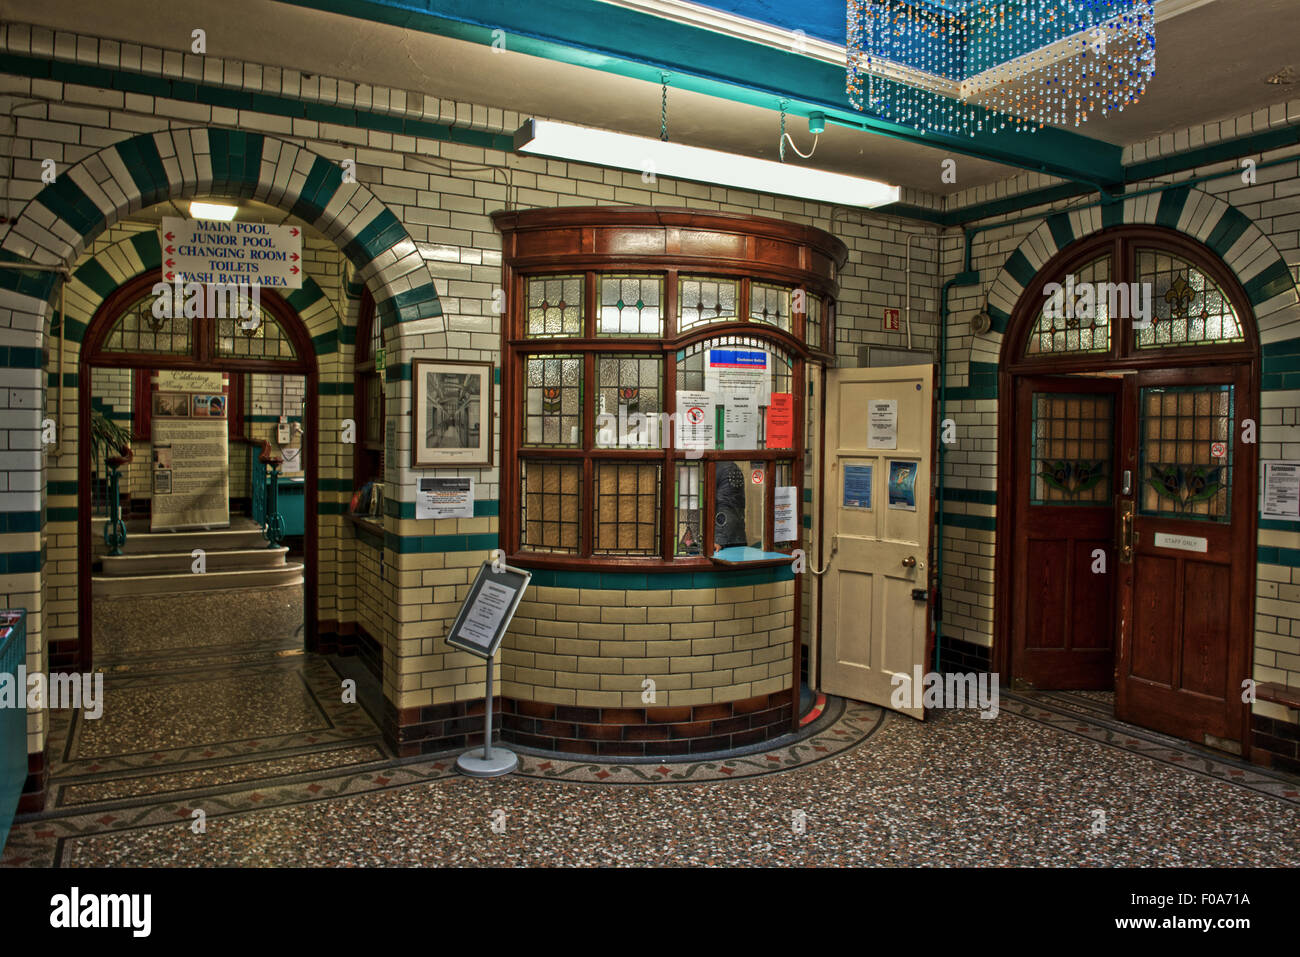 The main foyer and admission in Moseley Road Swimming Baths, Balsall Heath, Birmingham, UK - Stock Image